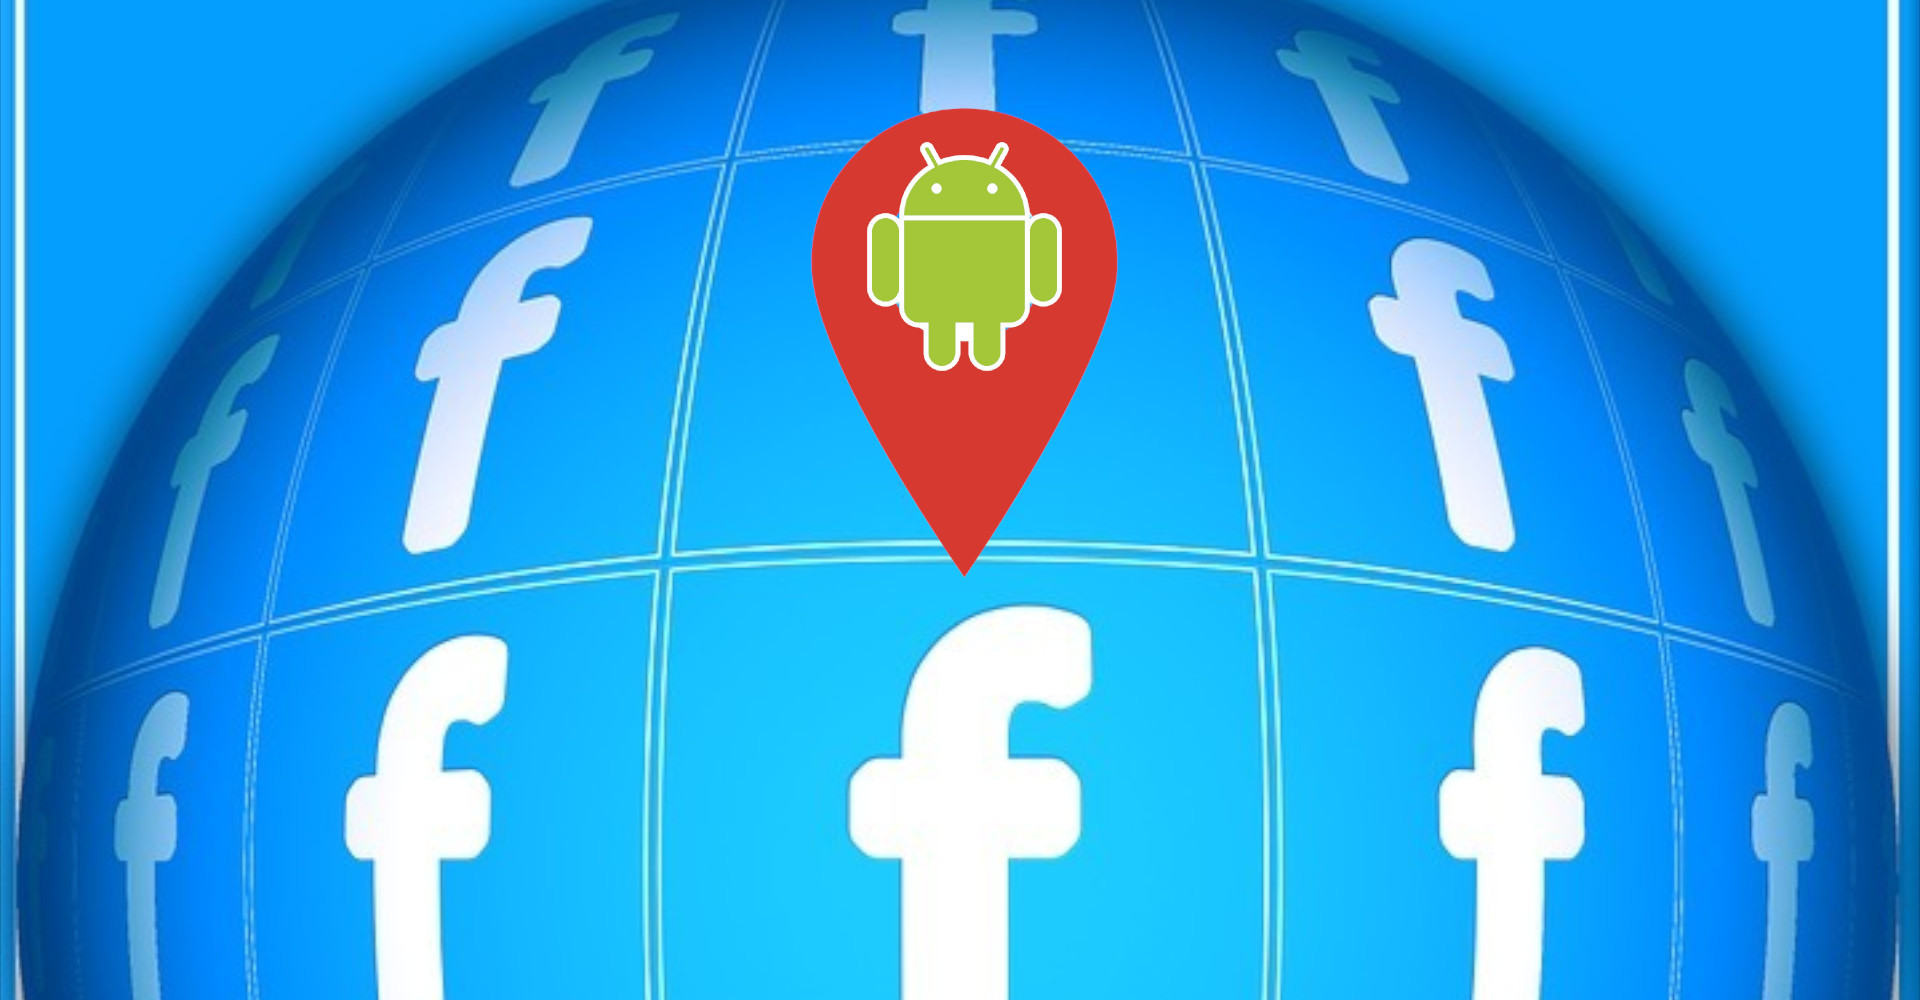 Facebook: more Options in Location Settings for Android Users